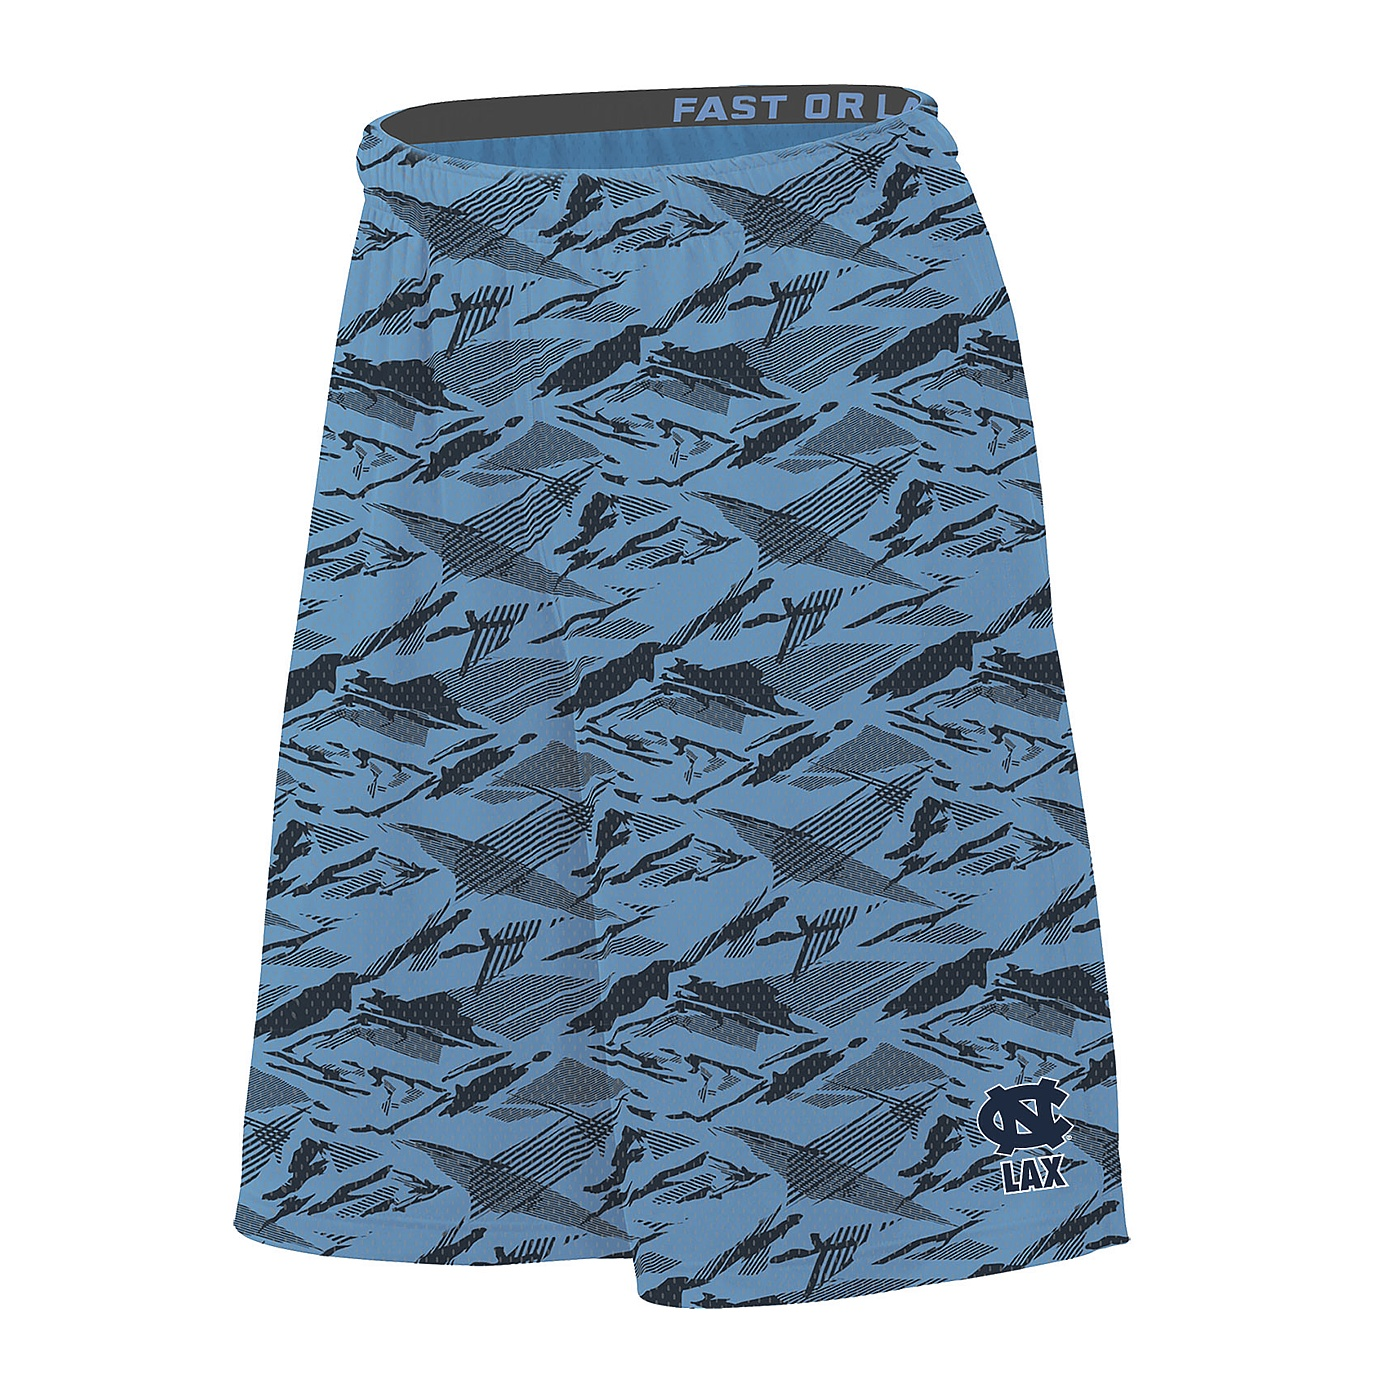 Johnny T shirt North Carolina Tar Heels Nike Fast or Last Lacrosse Mesh Shorts (CBAnthracite Grey) by Nike